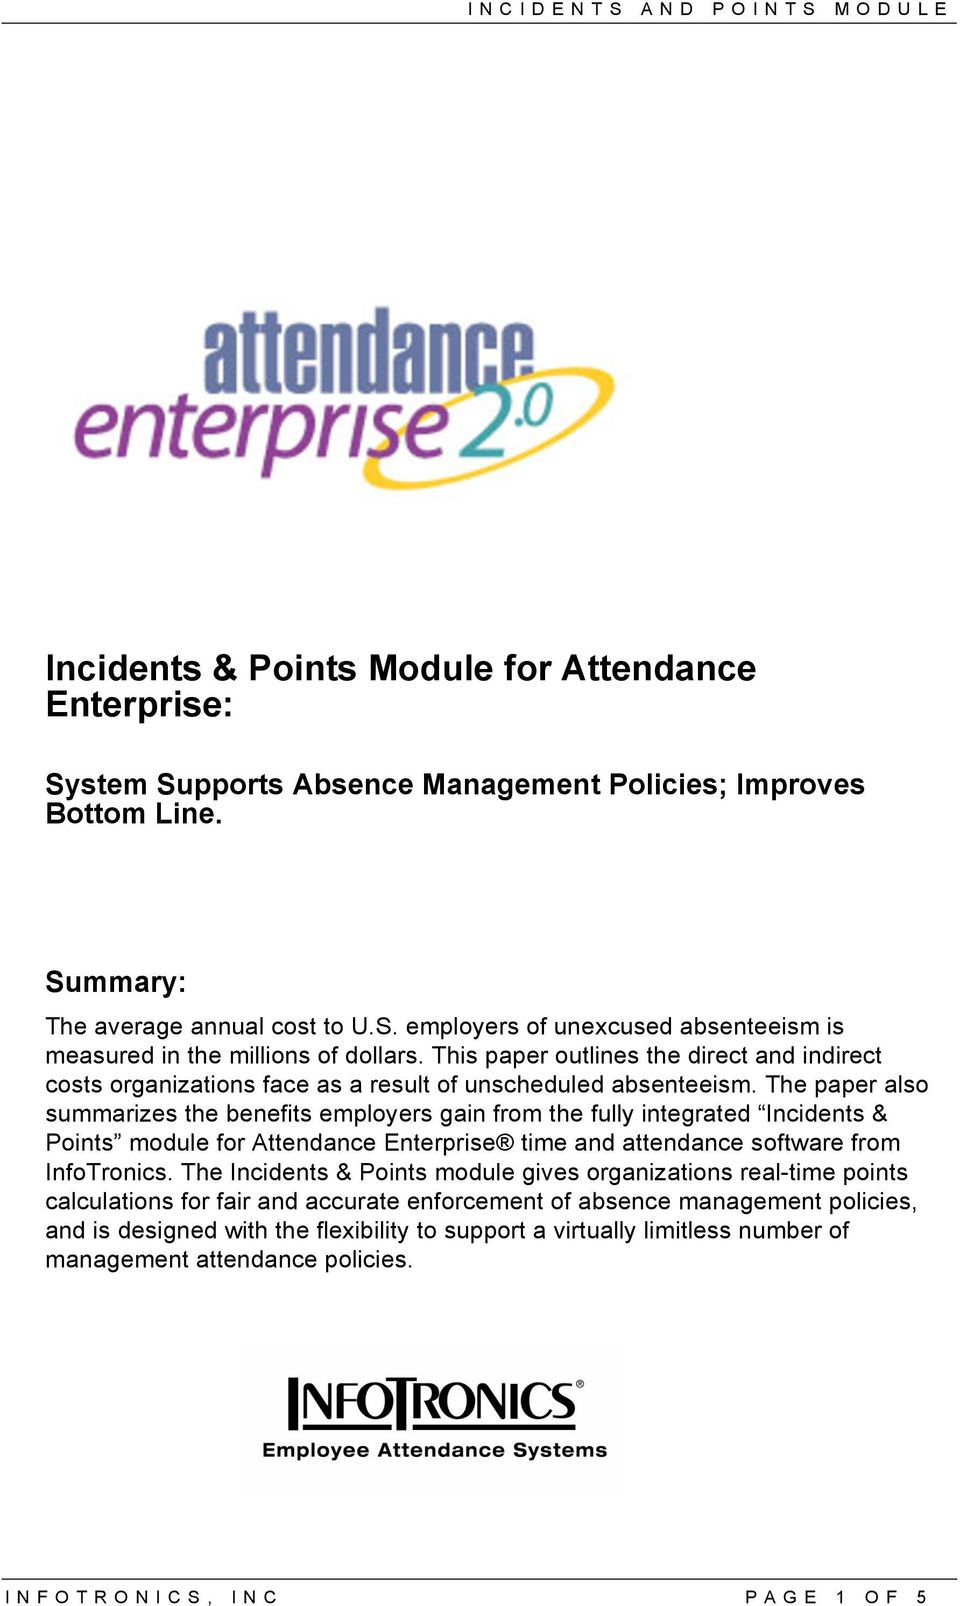 The paper also summarizes the benefits employers gain from the fully integrated Incidents & Points module for Attendance Enterprise time and attendance software from InfoTronics.